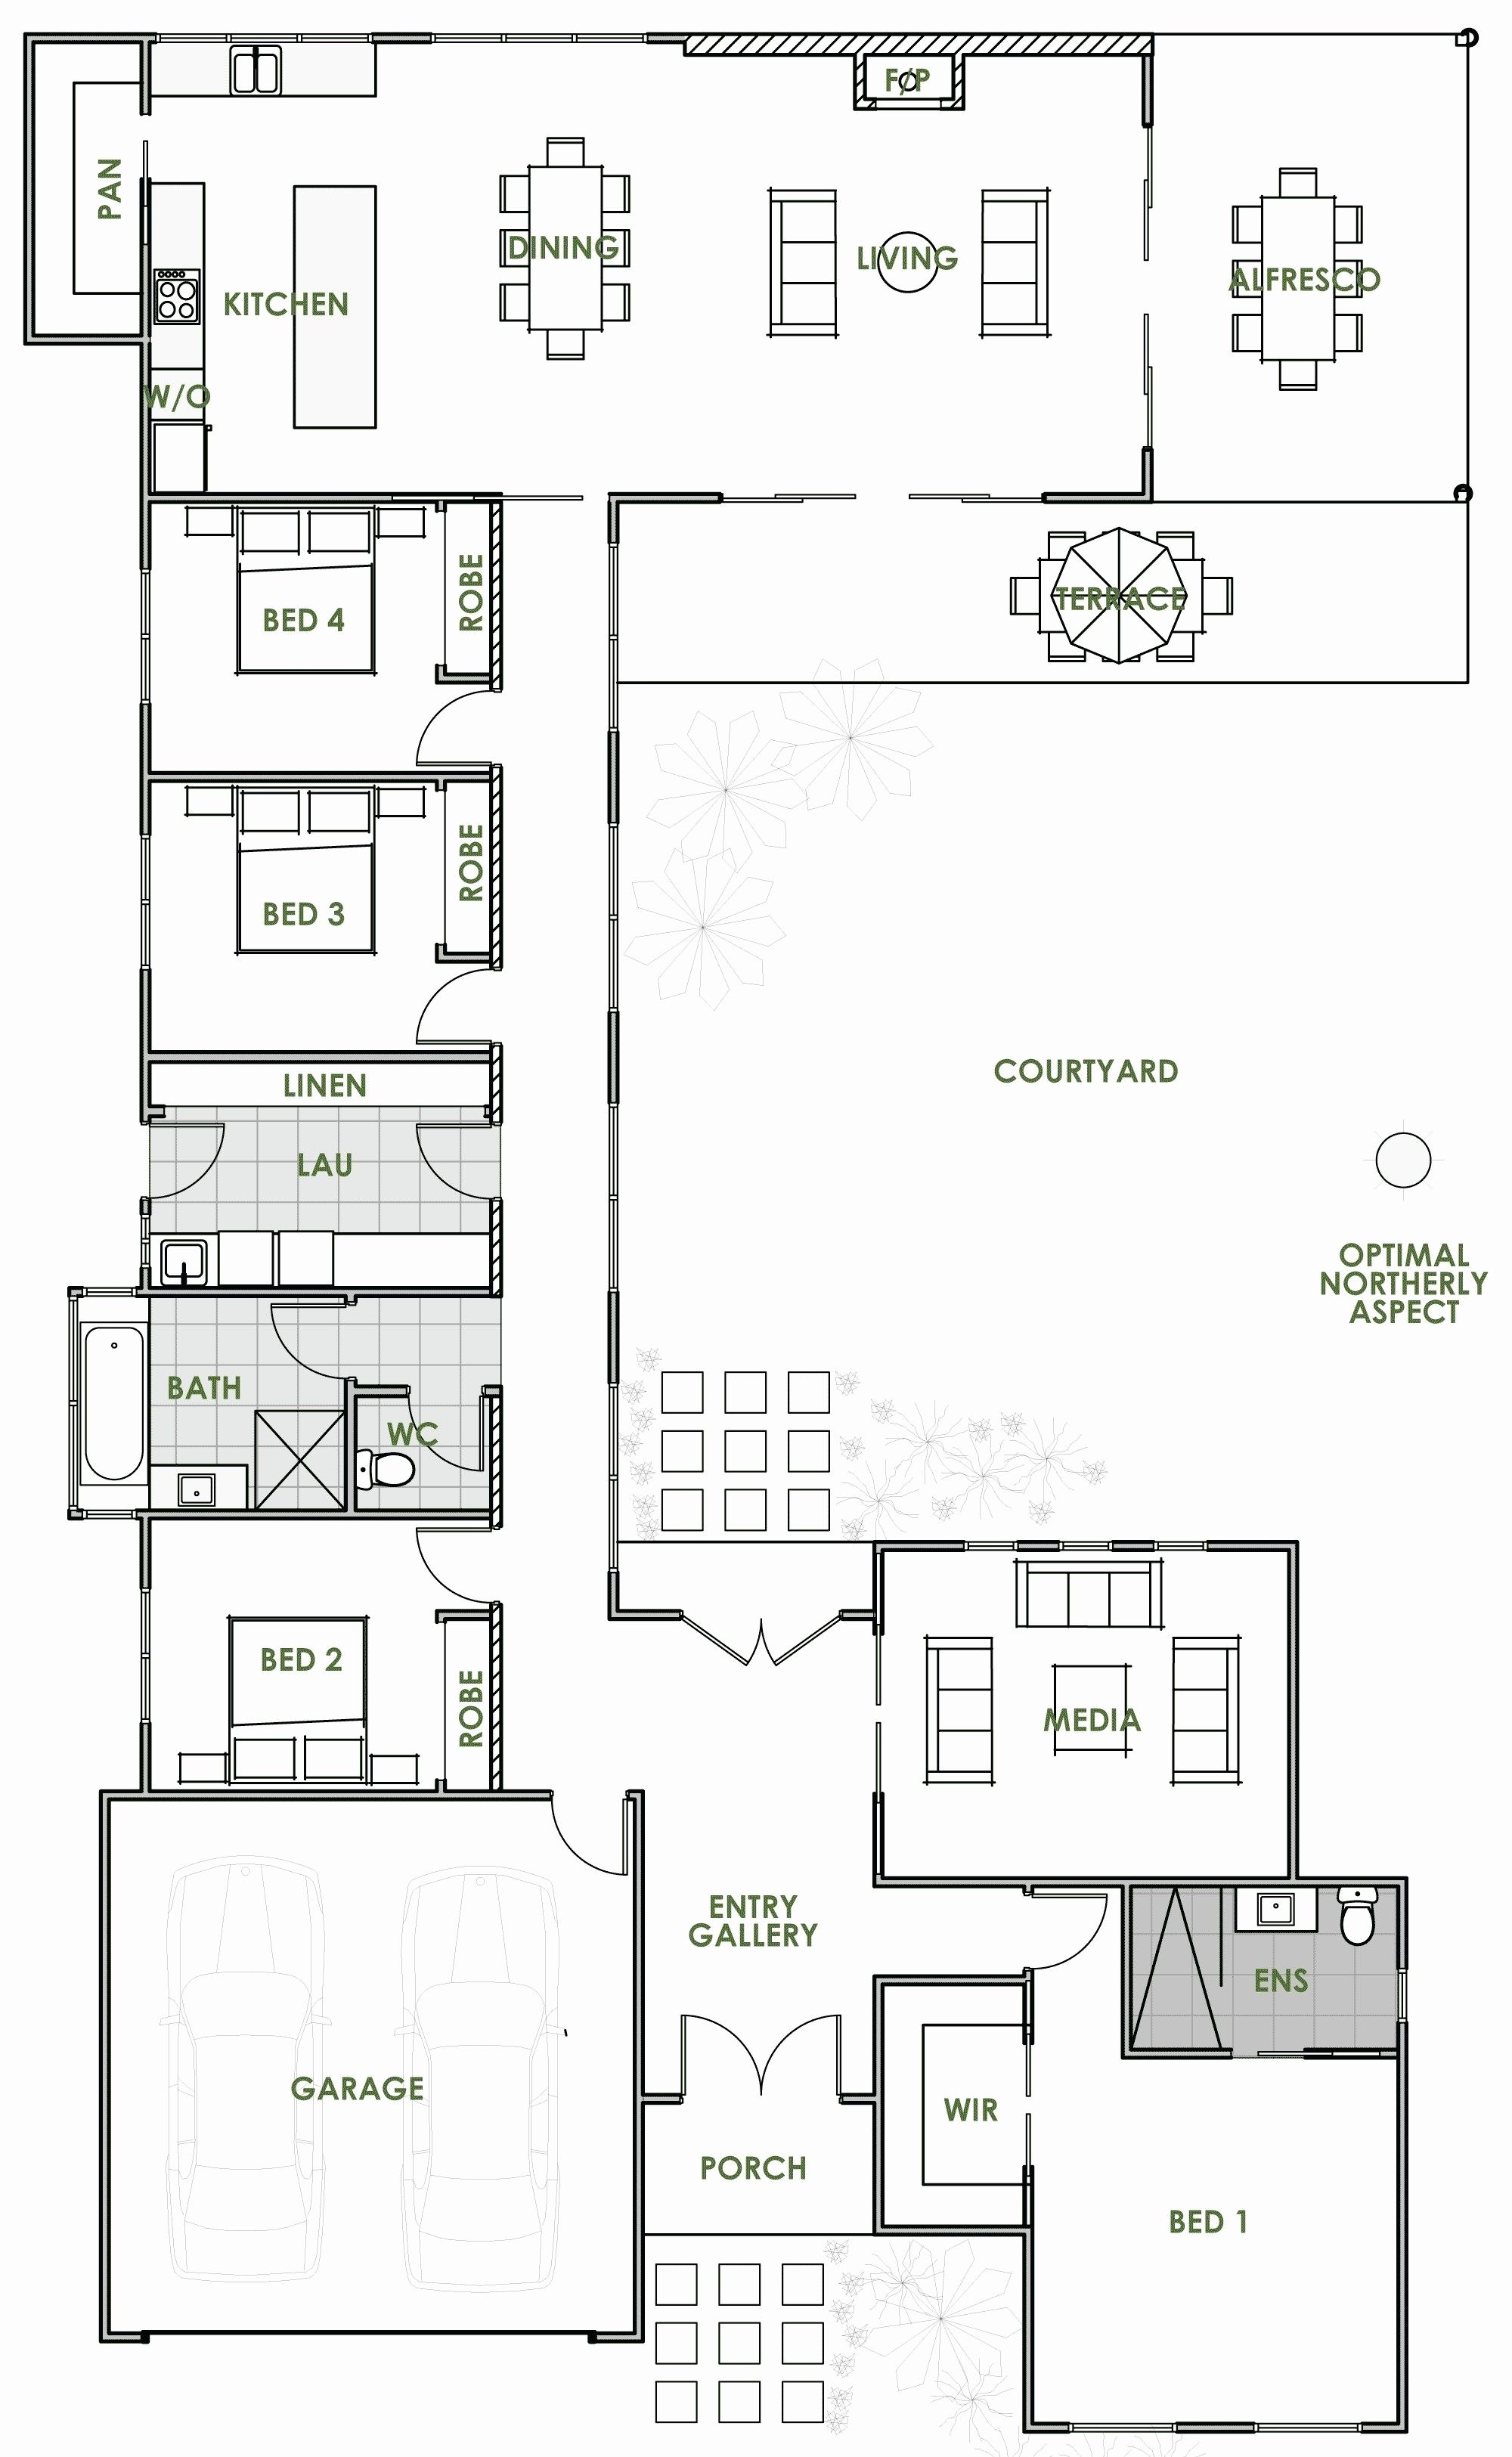 25 Clever Free Home Plans In 2020 U Shaped House Plans Open Floor House Plans House Plans Australia